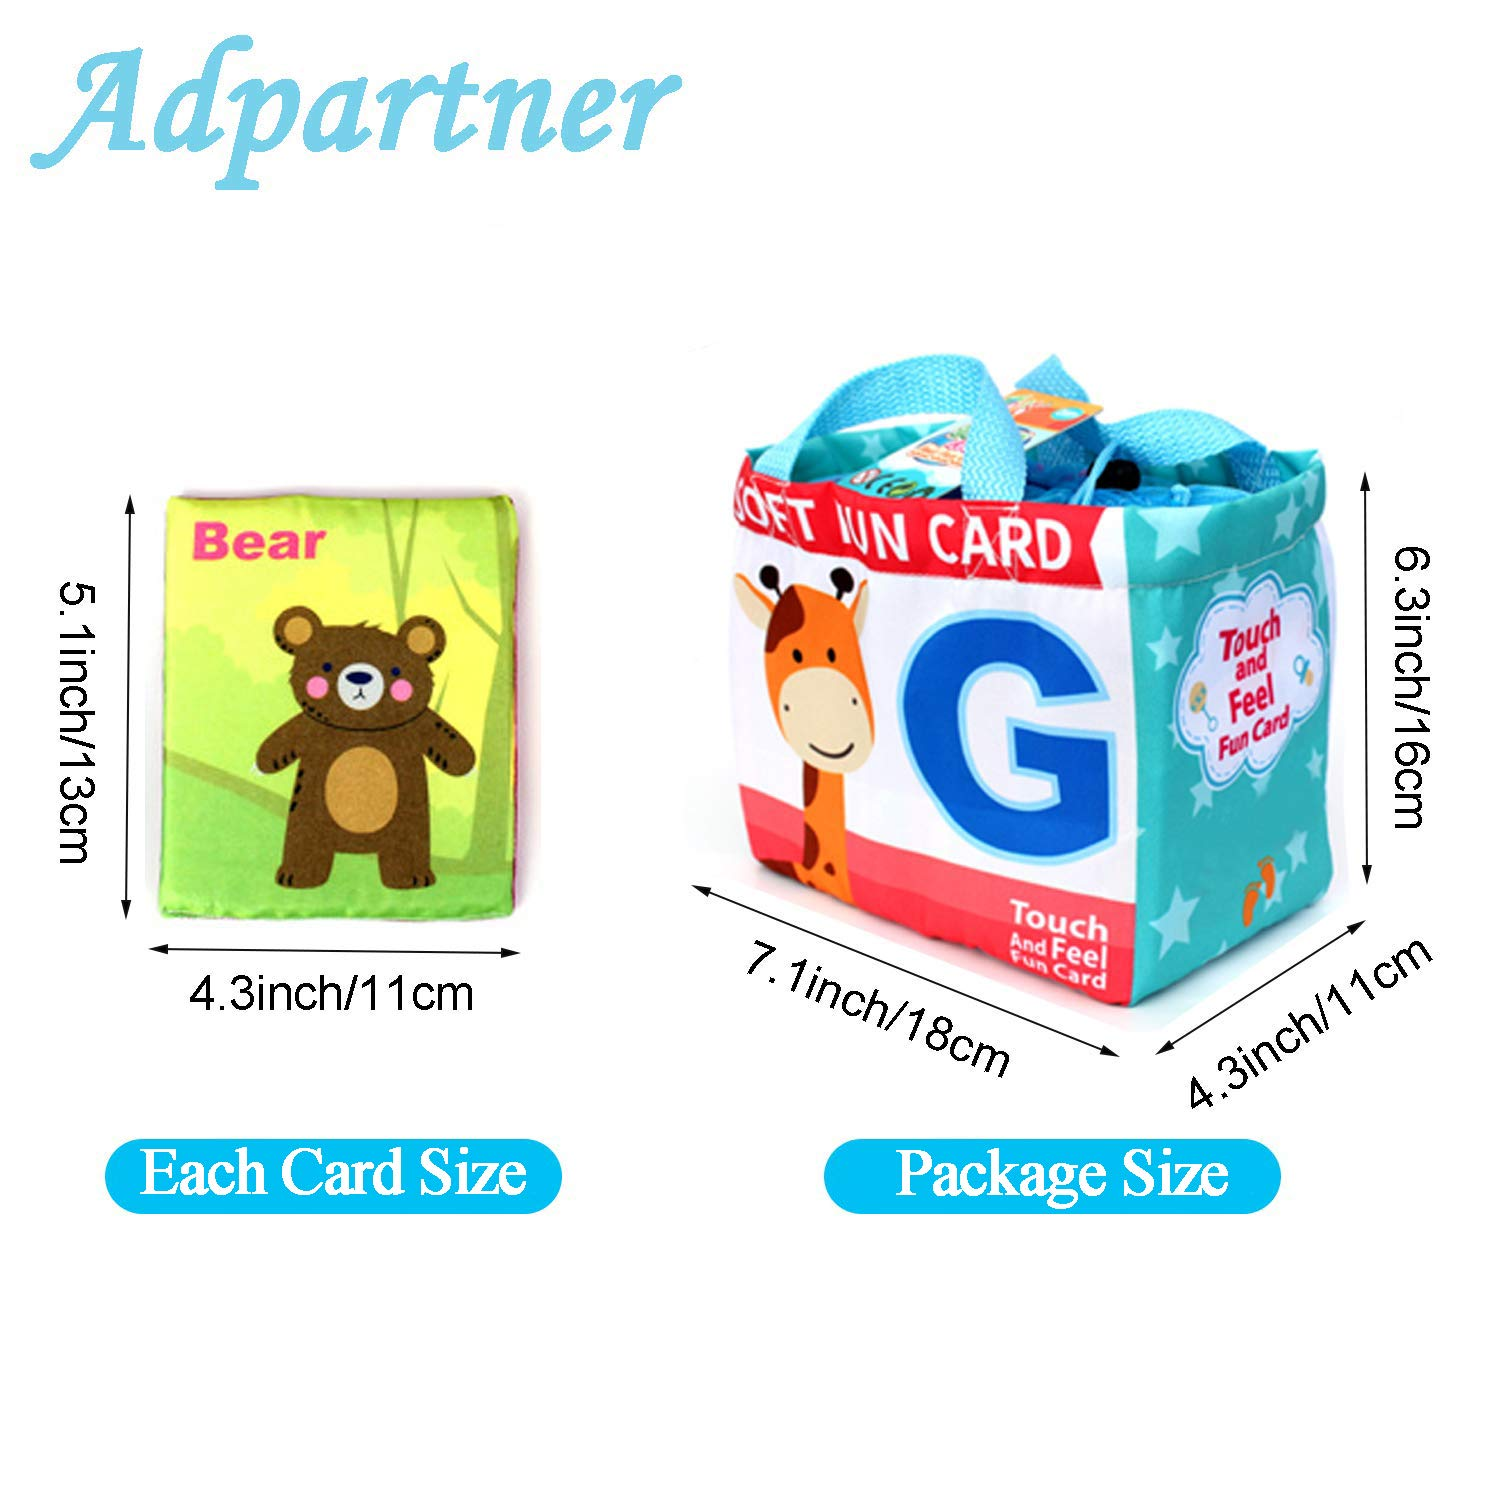 Washable Soft Cloth Toy for Toddlers Infants and Kids Baby Early Education Toy with Drawstring Bag Adpartner 26 Letters Cloth Cards